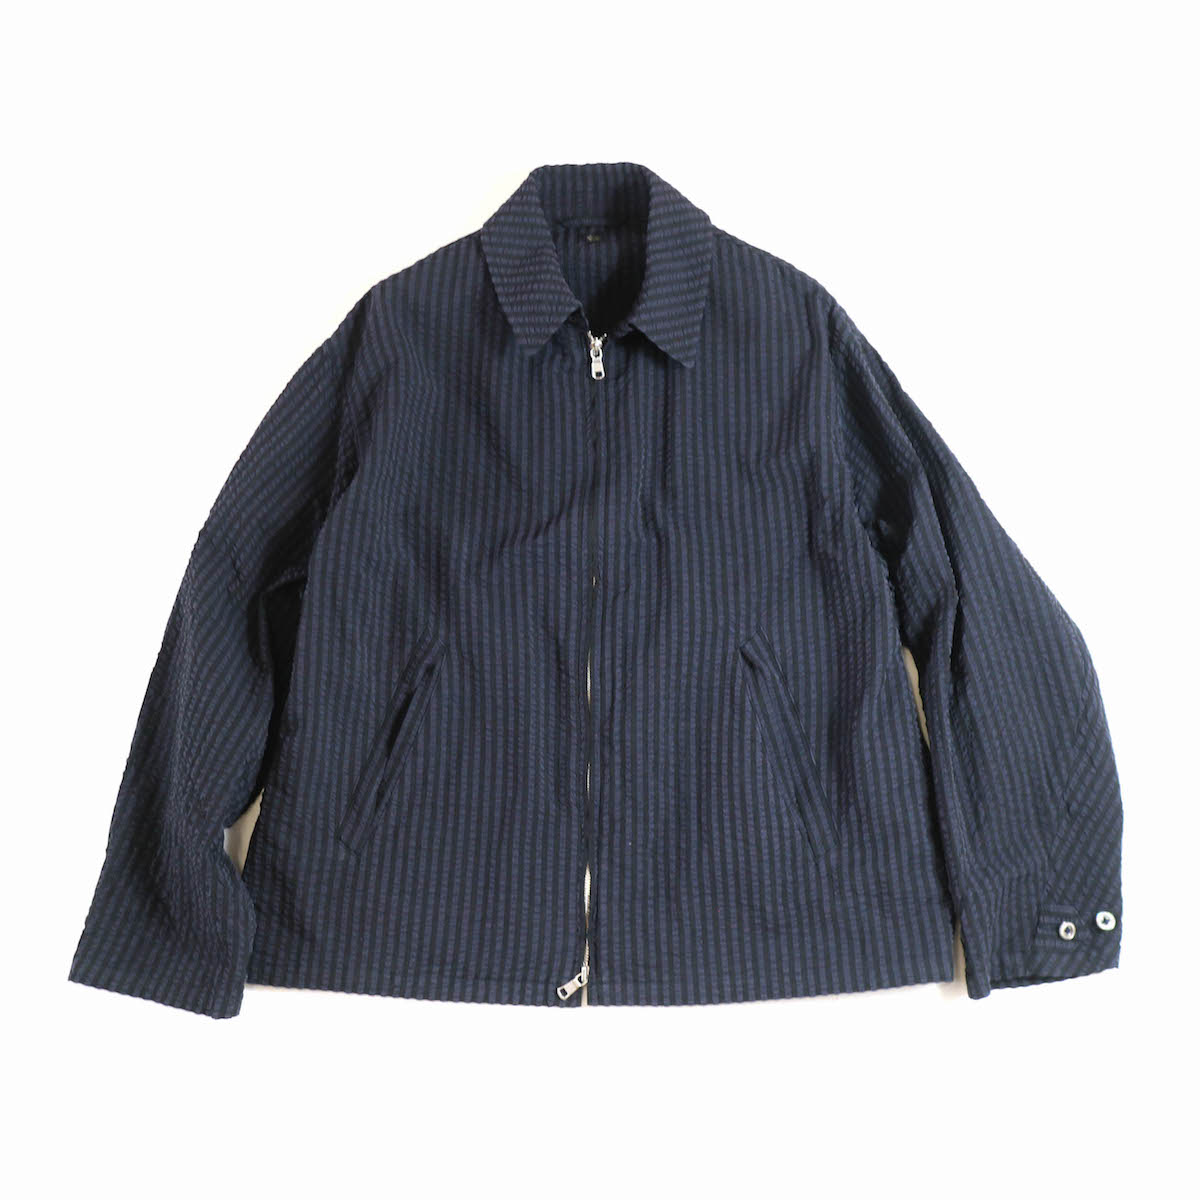 KAPTAIN SUNSHINE / Drizzler Jacket